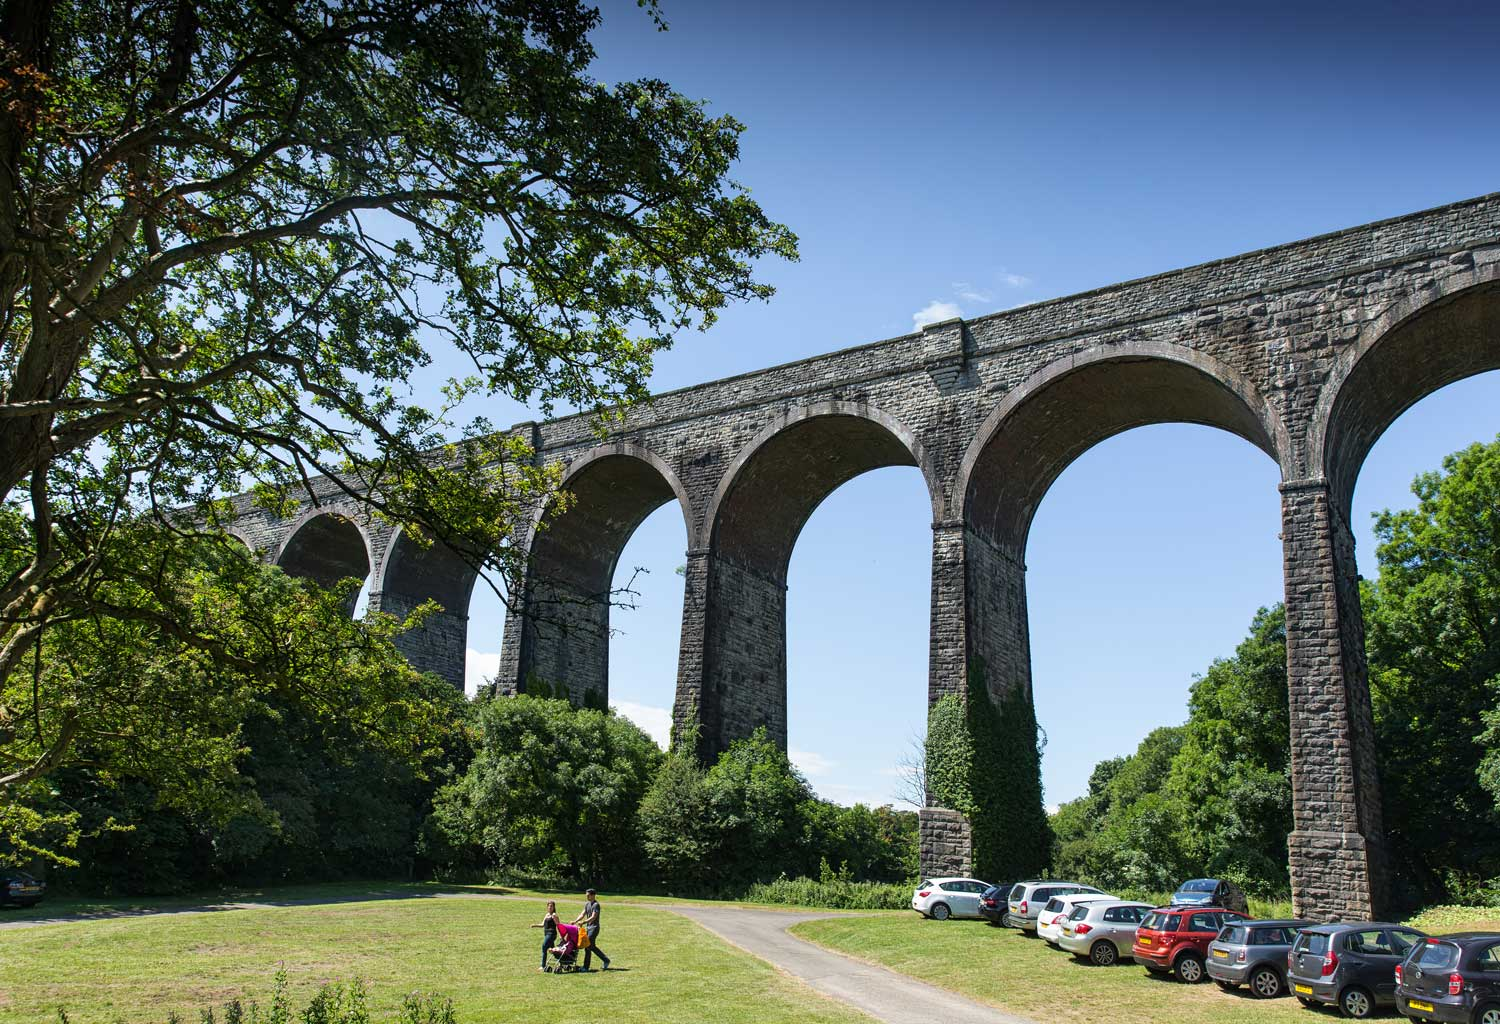 A family walking under Porthkerry Viaduct